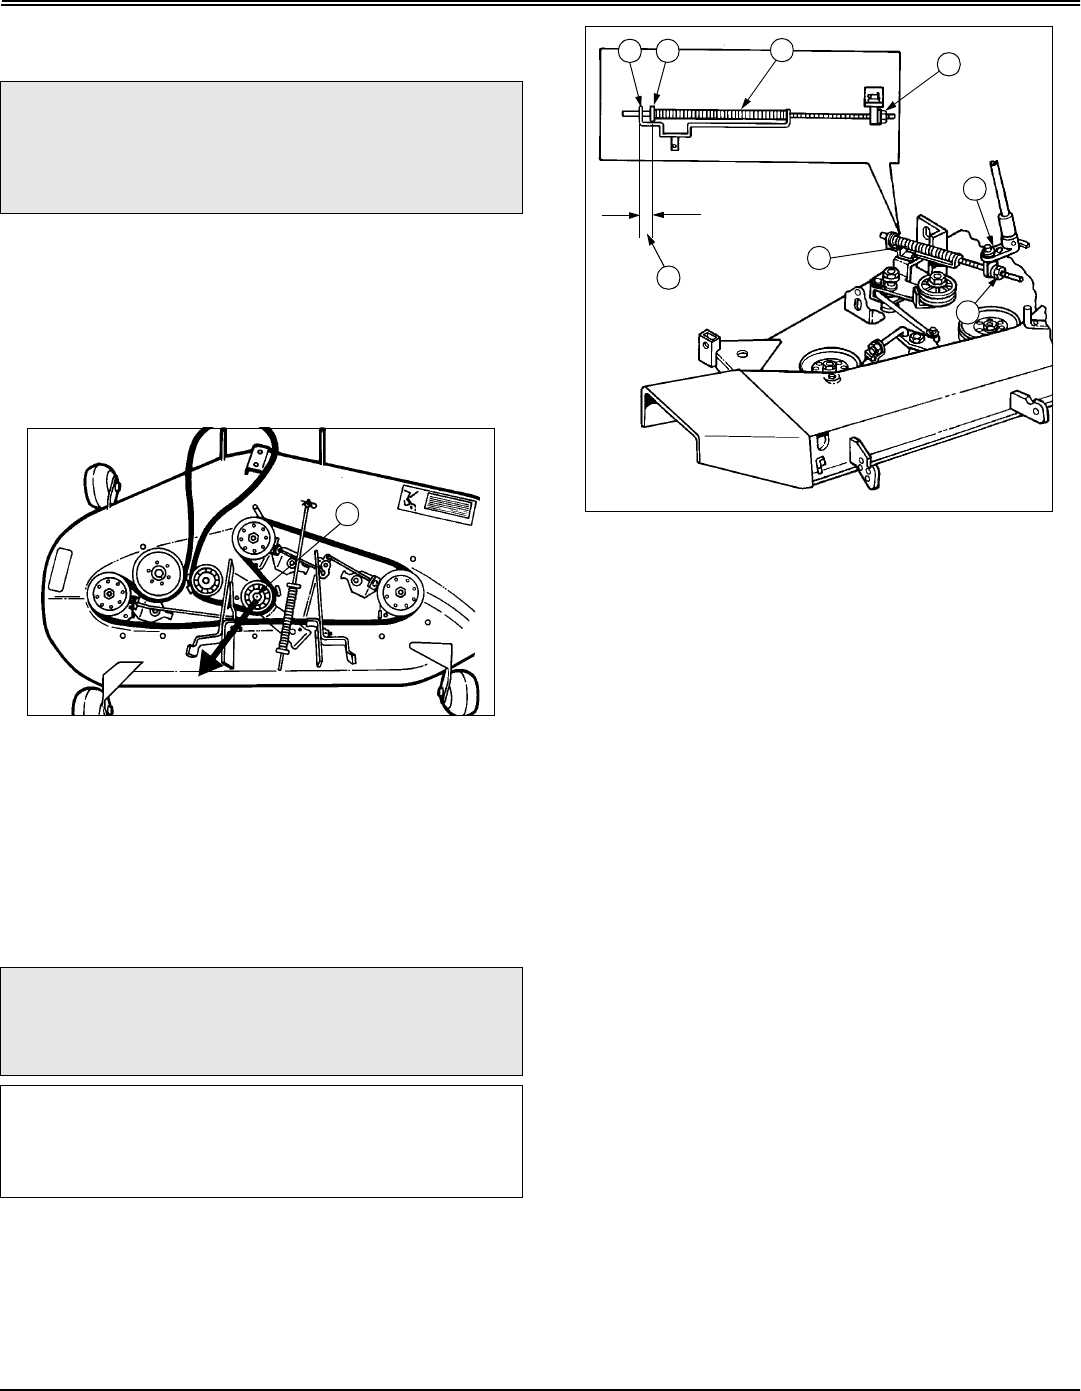 b5e9d01c 9017 4e04 82a5 0d387216d6f2 bg23 page 35 of scotts lawn mower s2546 user guide manualsonline com scotts s1642 wiring diagram at edmiracle.co